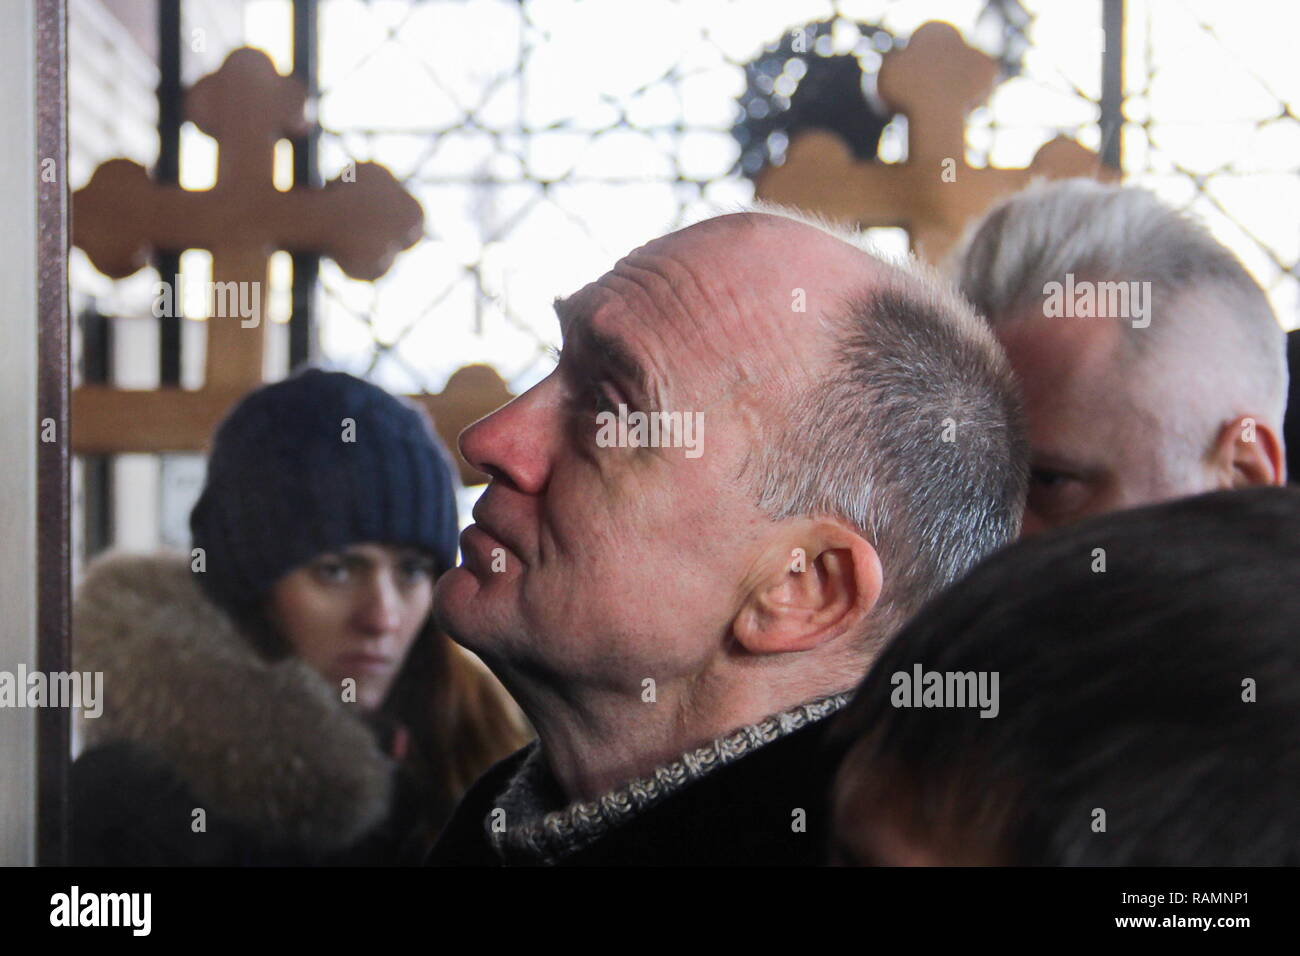 Magnitogorsk, Russia. 04th Jan, 2019. MAGNITOGORSK, RUSSIA - JANUARY 4, 2019: The Governor of Chelyabinsk Region, Boris Dubrovsky, at the funeral of gas explosion victims; a section of a ten-storeyed apartment block collapsed at 164 Karla Marksa Street in Magnitogorsk, Russia, early on 31 December 2018 following a gas explosion; 39 people have been killed in the accident. Ilya Moskovets/TASS Credit: ITAR-TASS News Agency/Alamy Live News - Stock Image